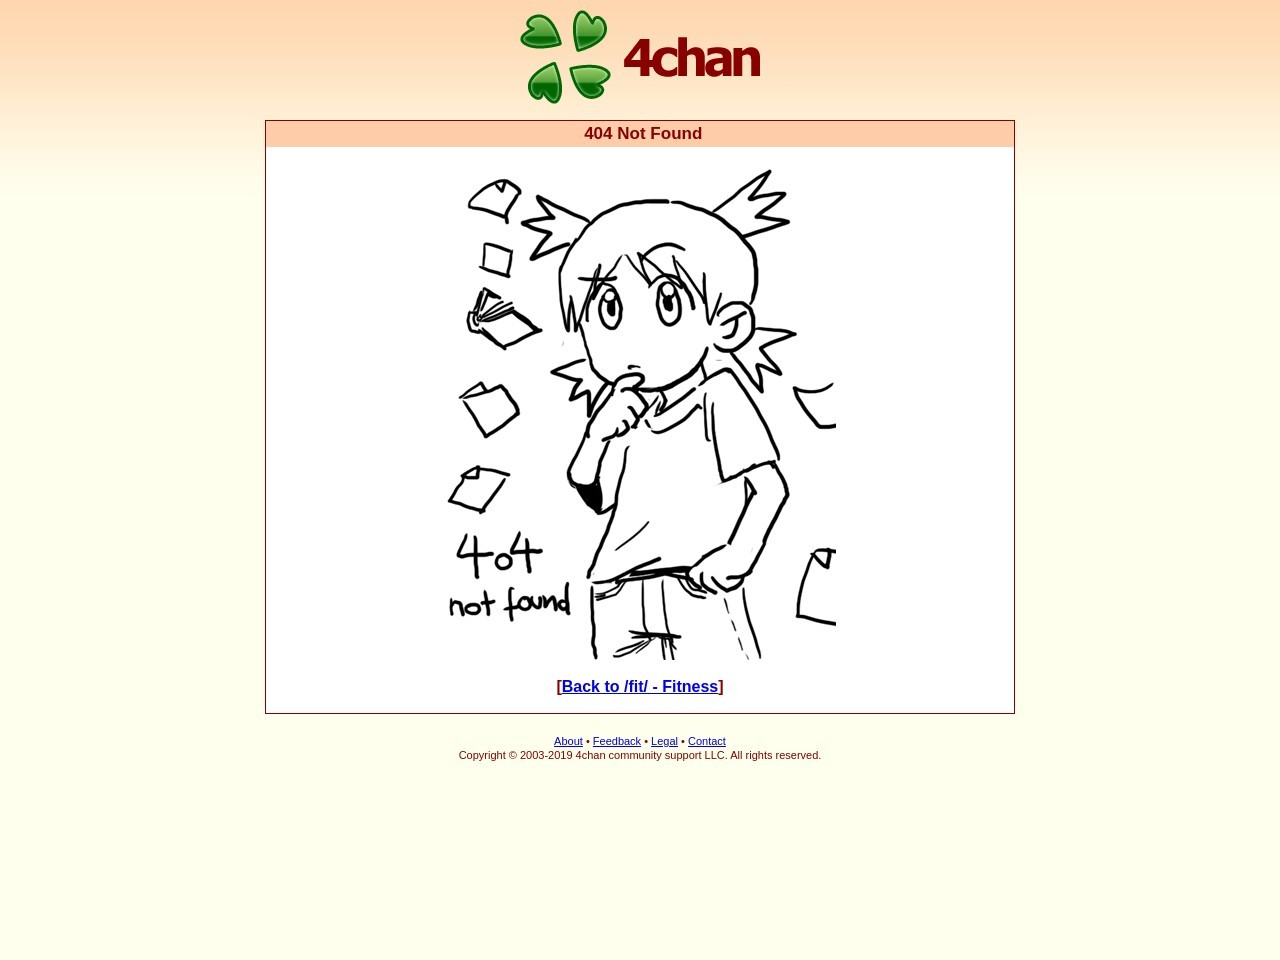 I recently started a job in the IT field, and I'm Fitness 4chan